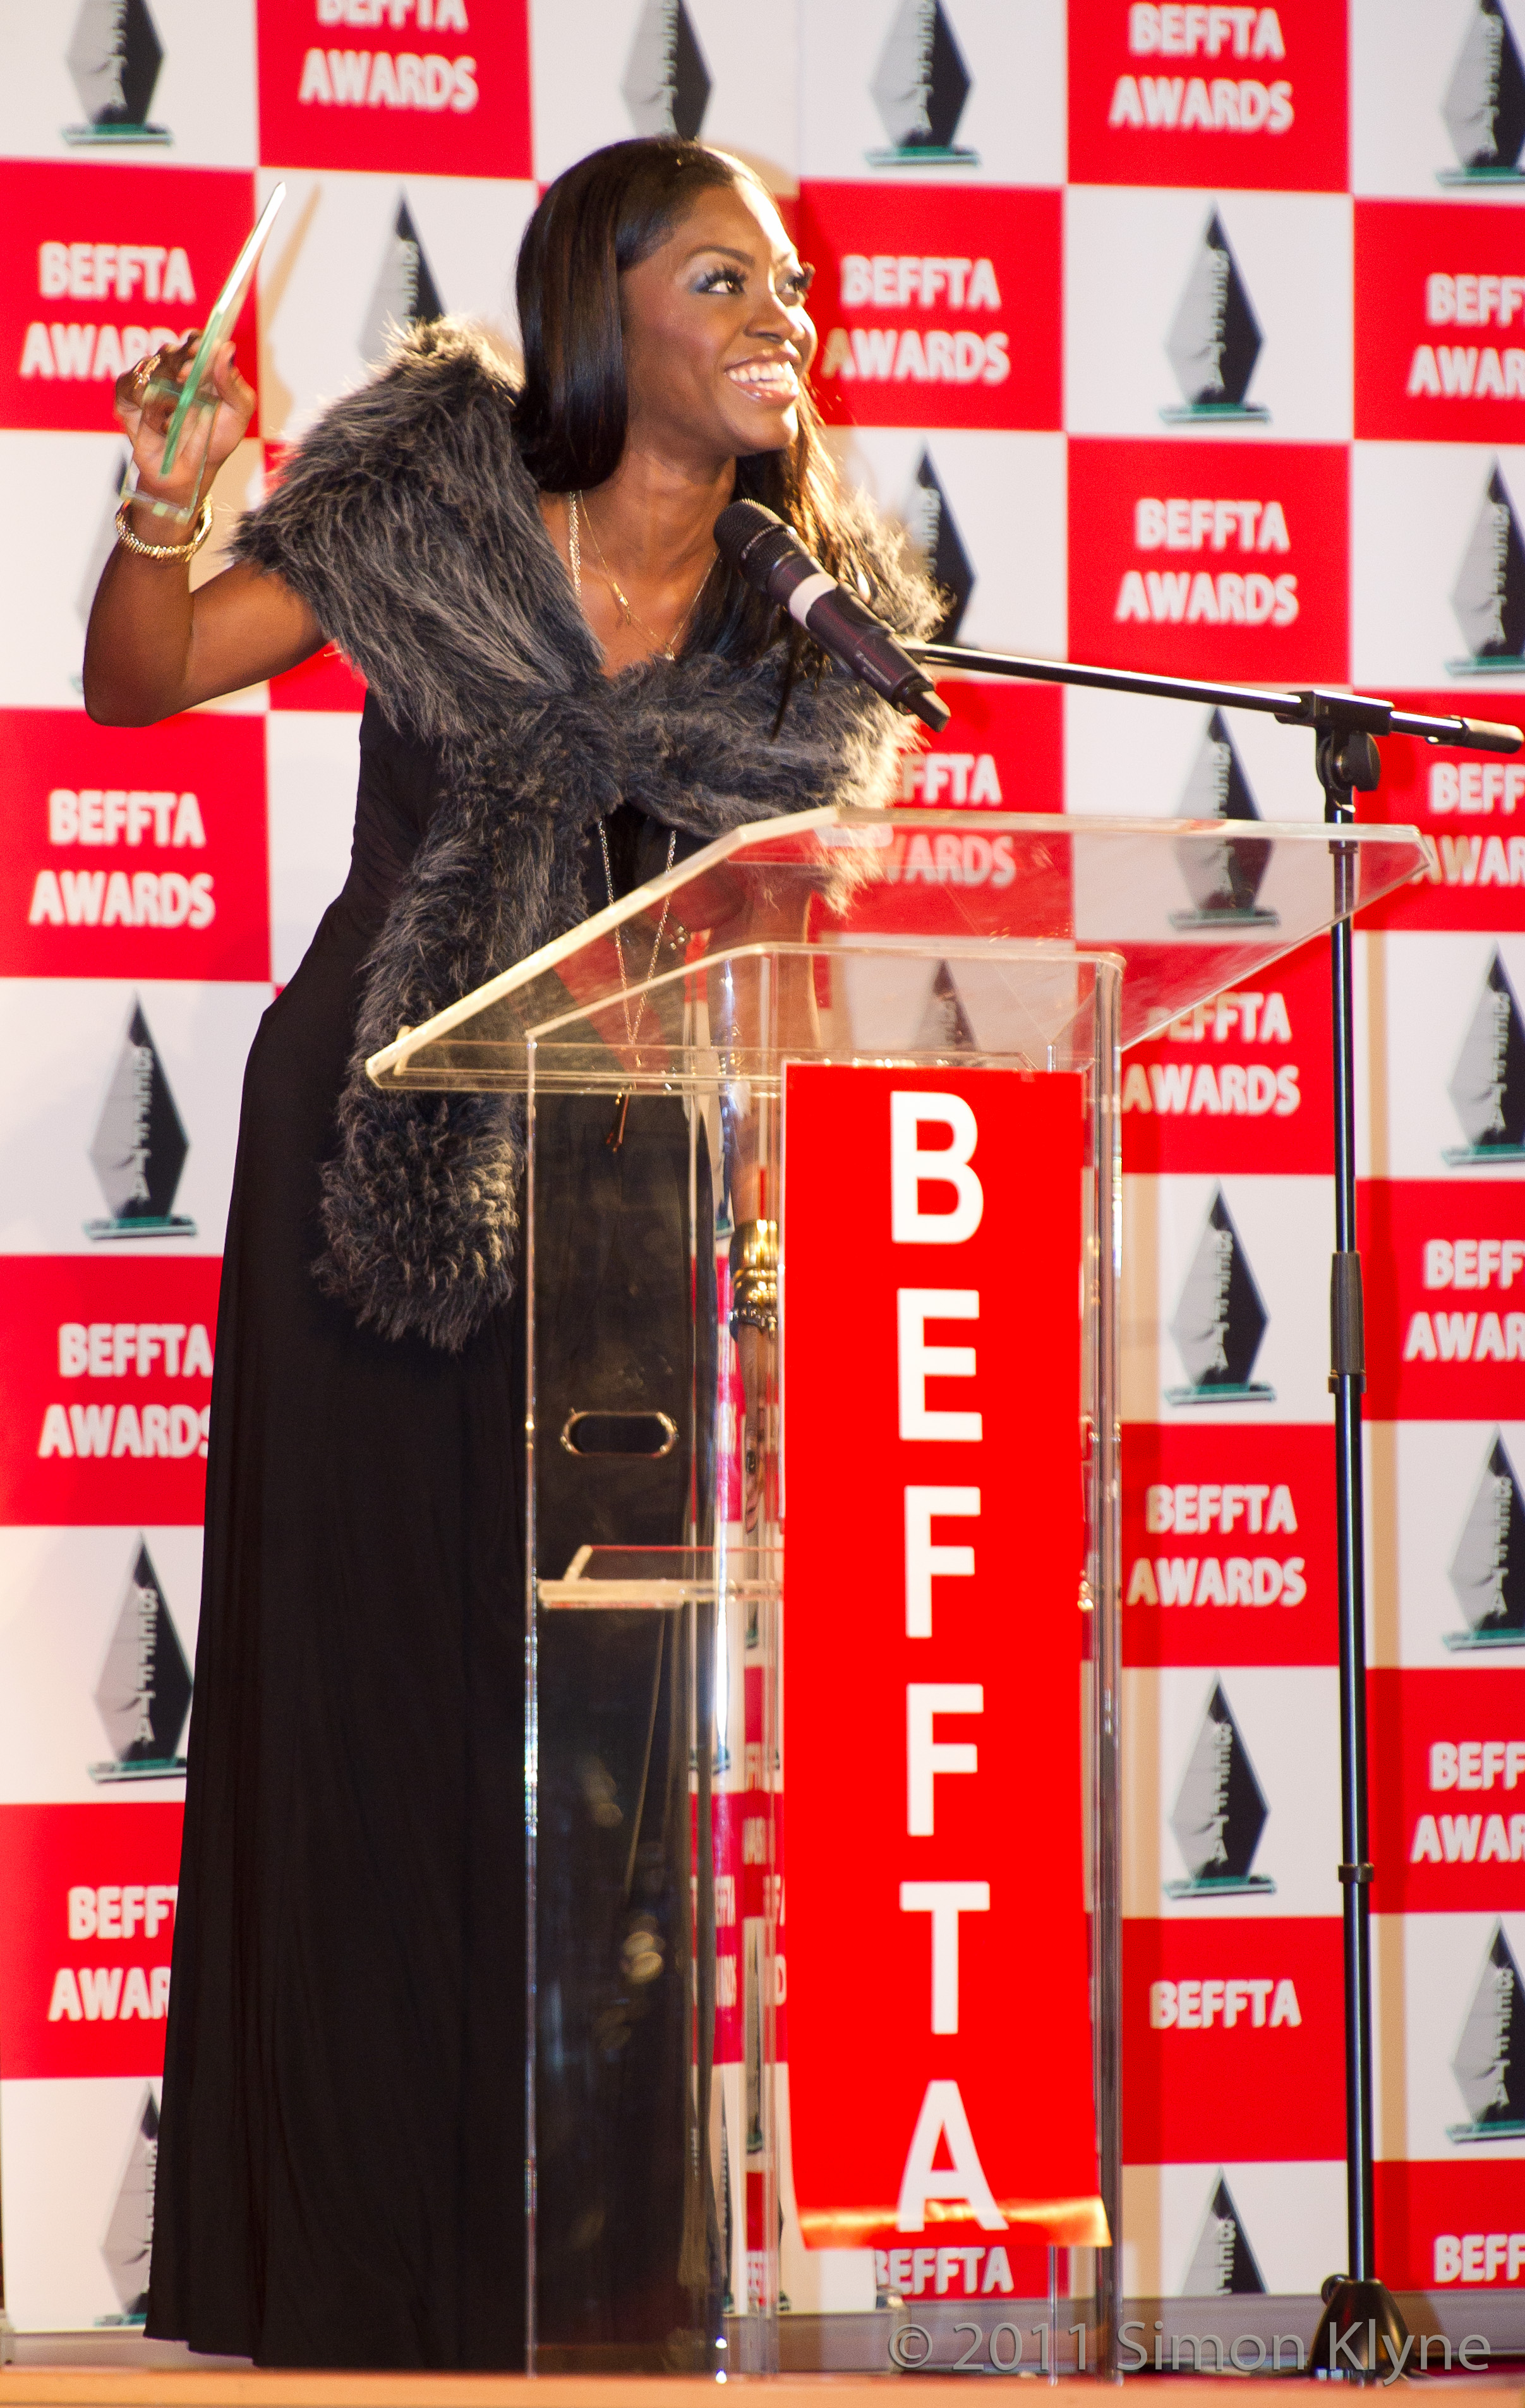 Mink London honoured at BEFFTA awards 2011 BEST MAKE UP ARTIST